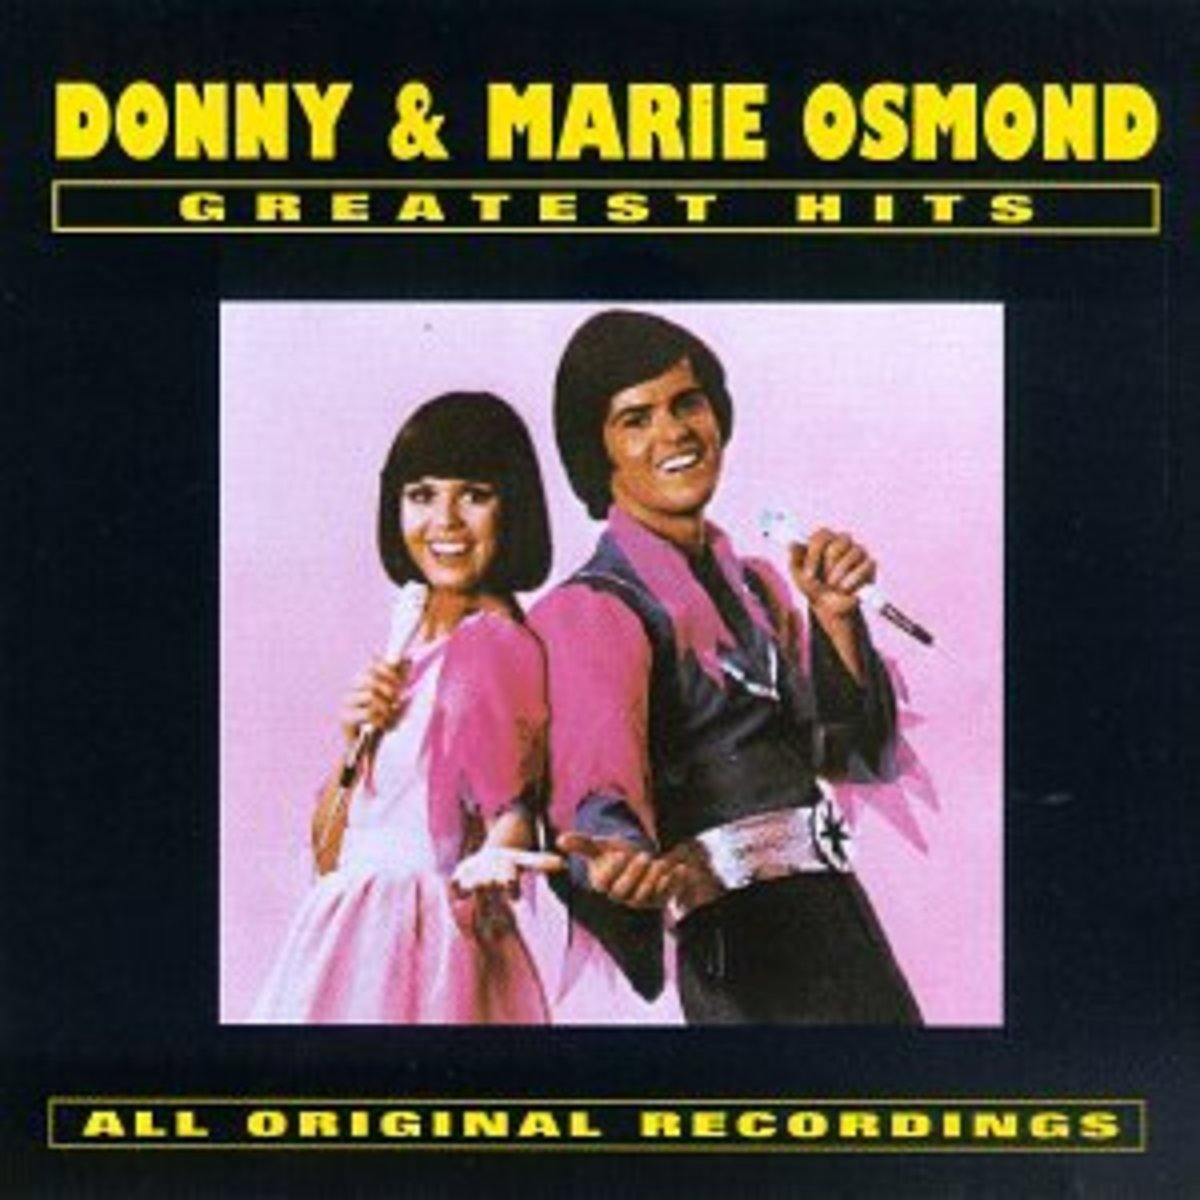 """The Donny and Marie Osmond greatest hits album which includes their hit song """"I'm Leaving it All Up To You"""" and other greats."""